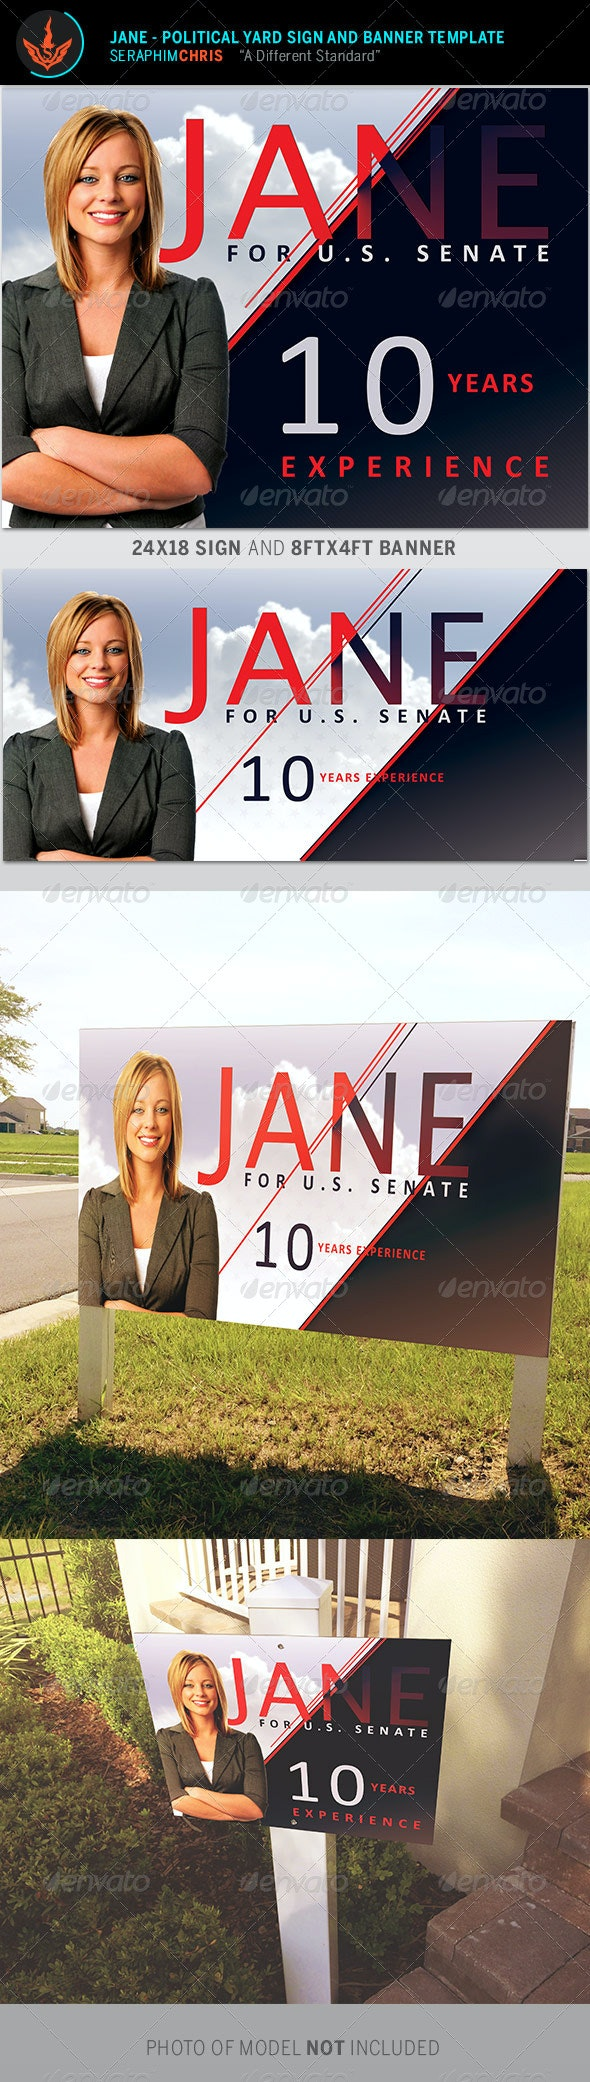 Jane Political Yard Sign and Banner Template